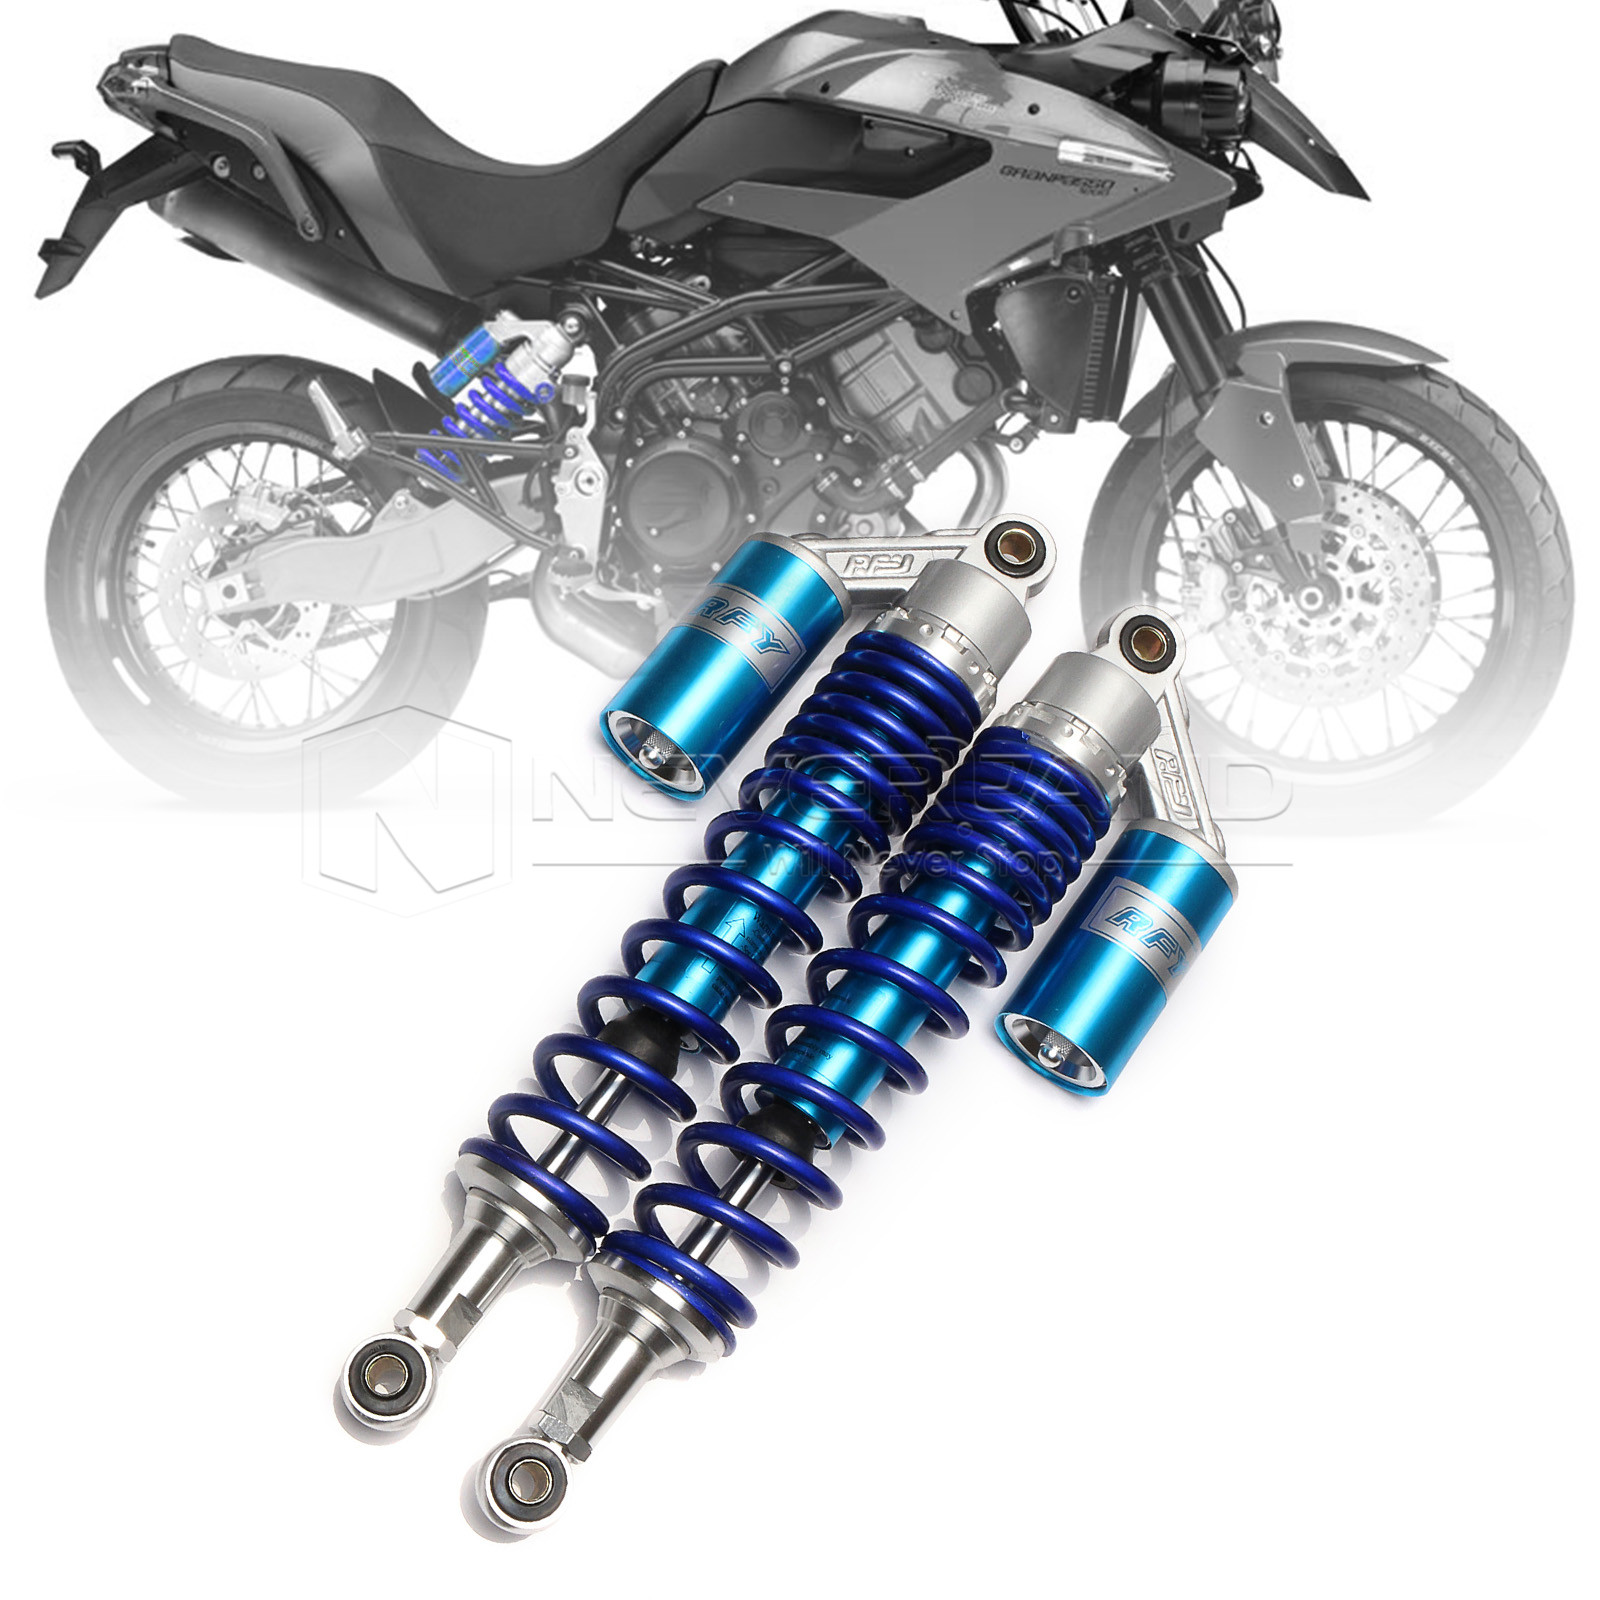 "Universal 15 3/4"" 400mm Motorcycle Air Shock Absorber Rear Suspension Spring Damper Replacement For Yamaha YFZ450 Blue D15(China (Mainland))"